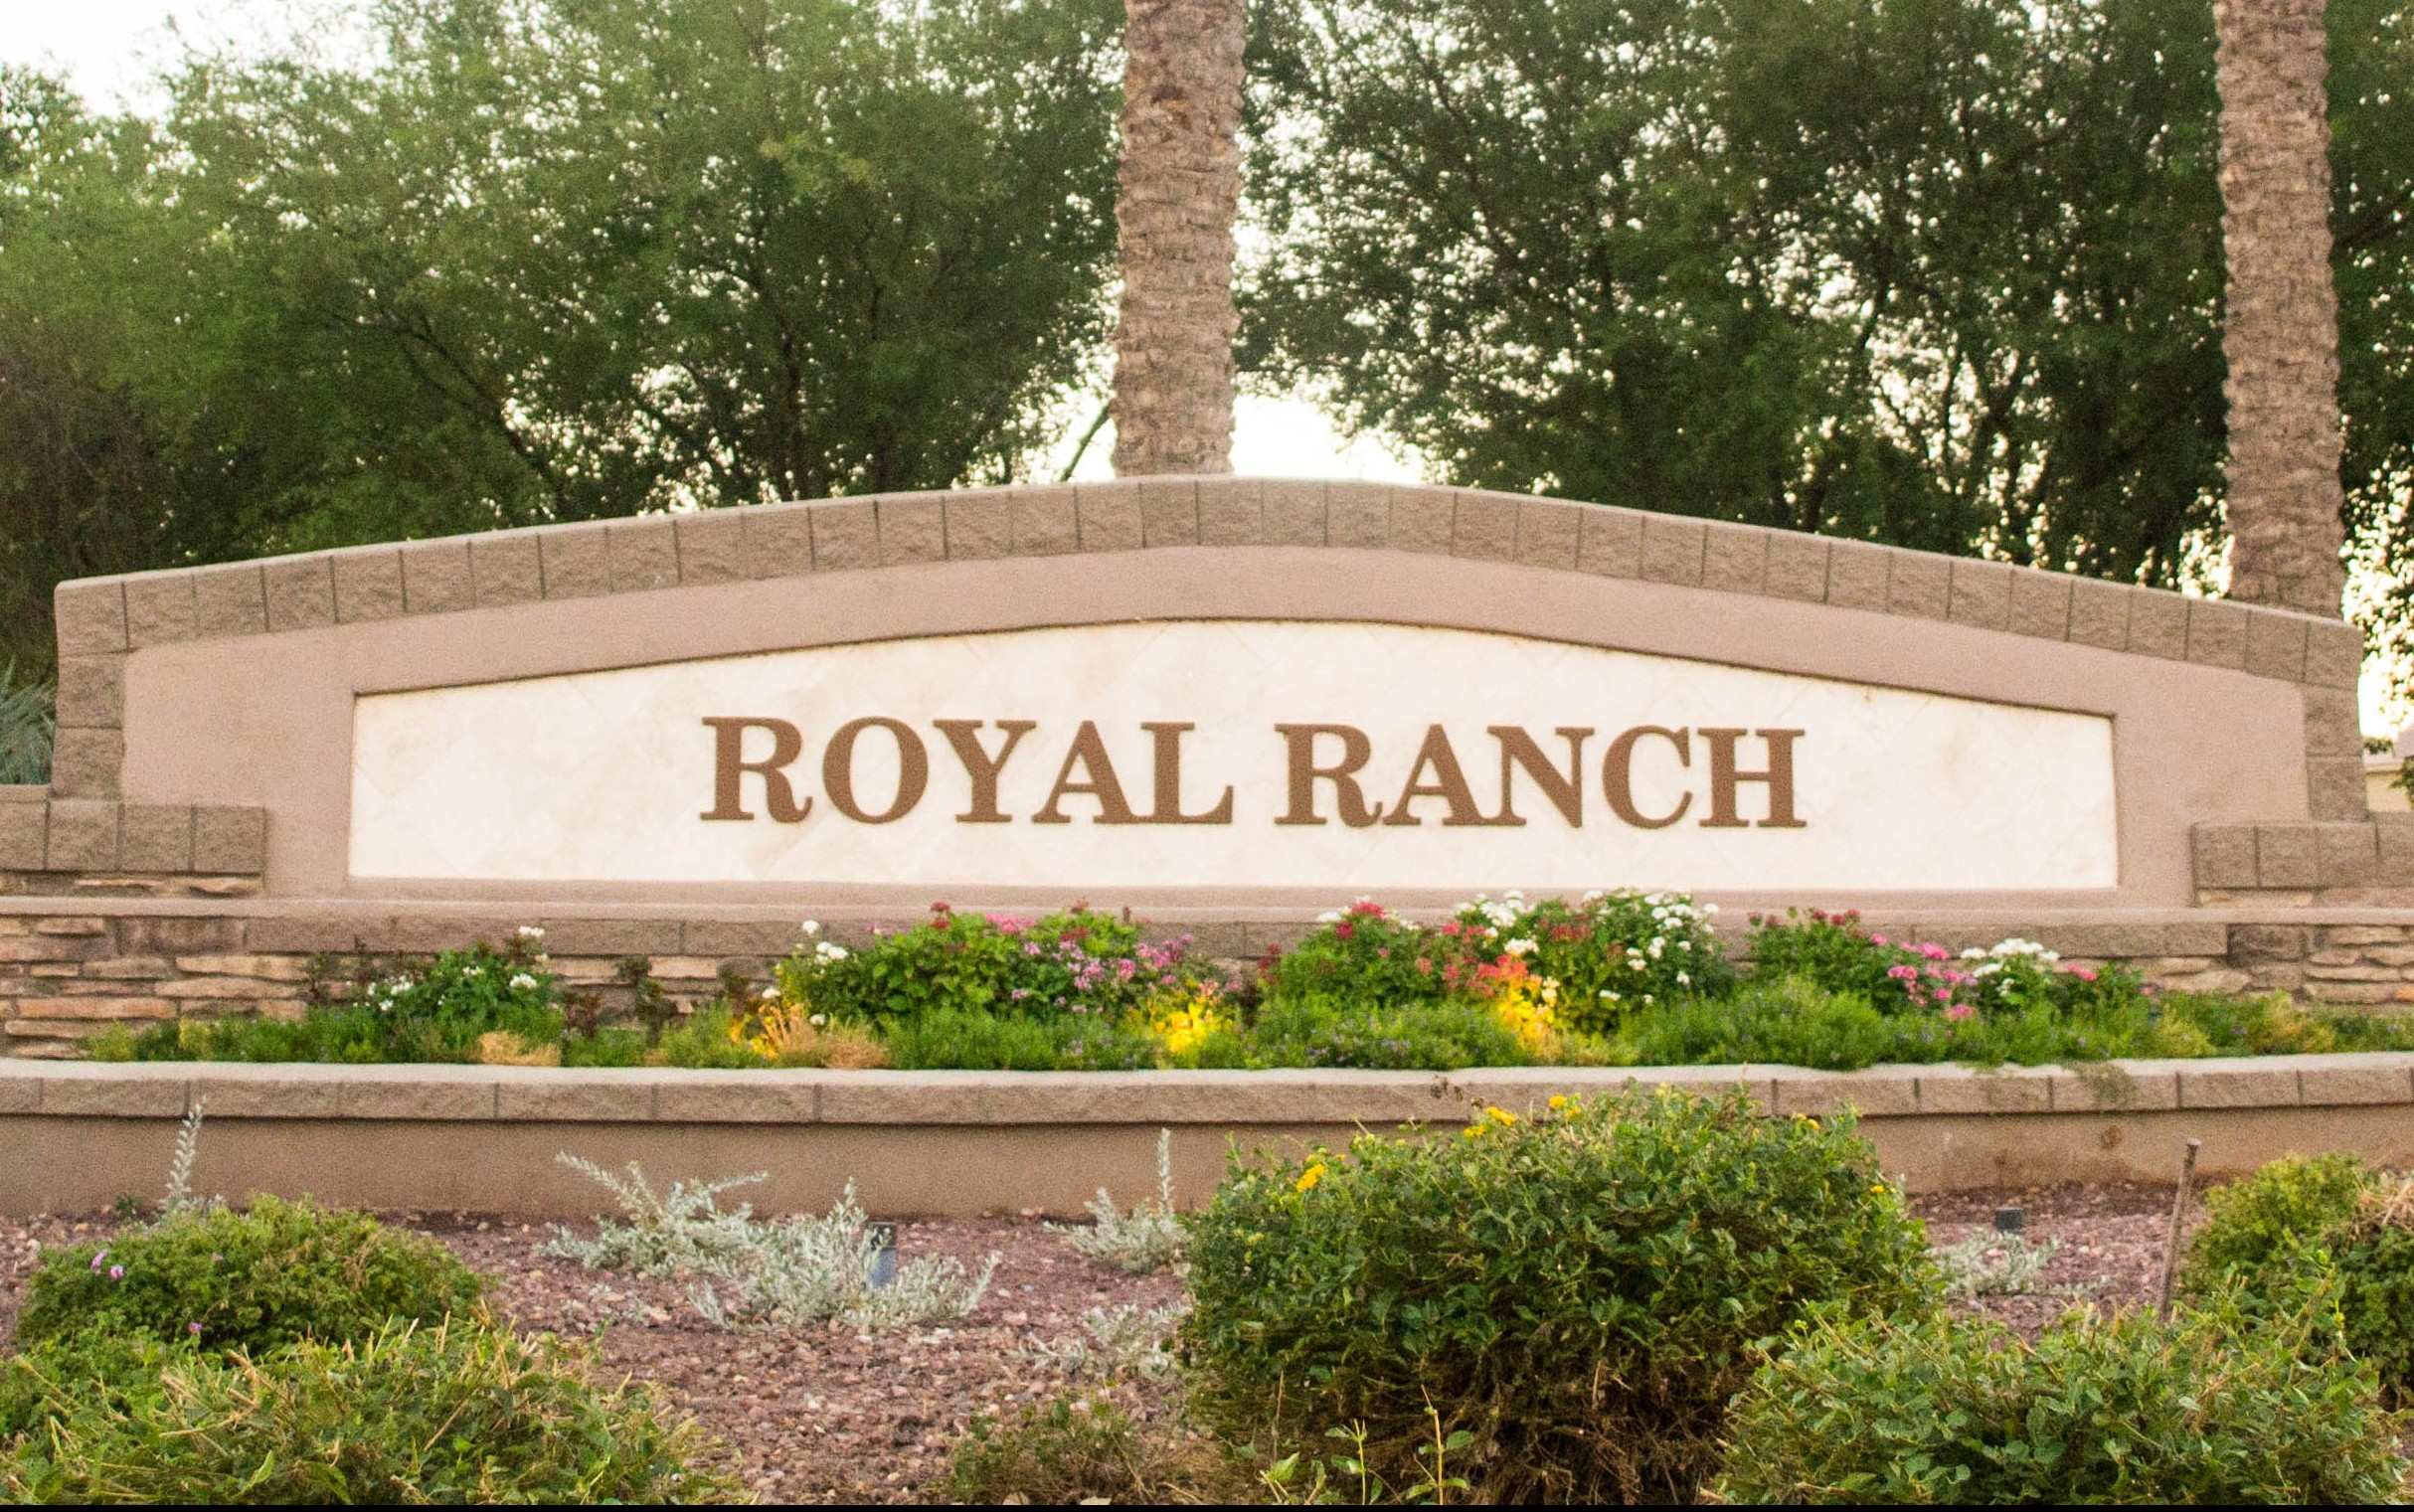 <!DOCTYPE html> <html> <head> <style> p {text-align:center;} </style> </head> <body>  <p>Royal Ranch